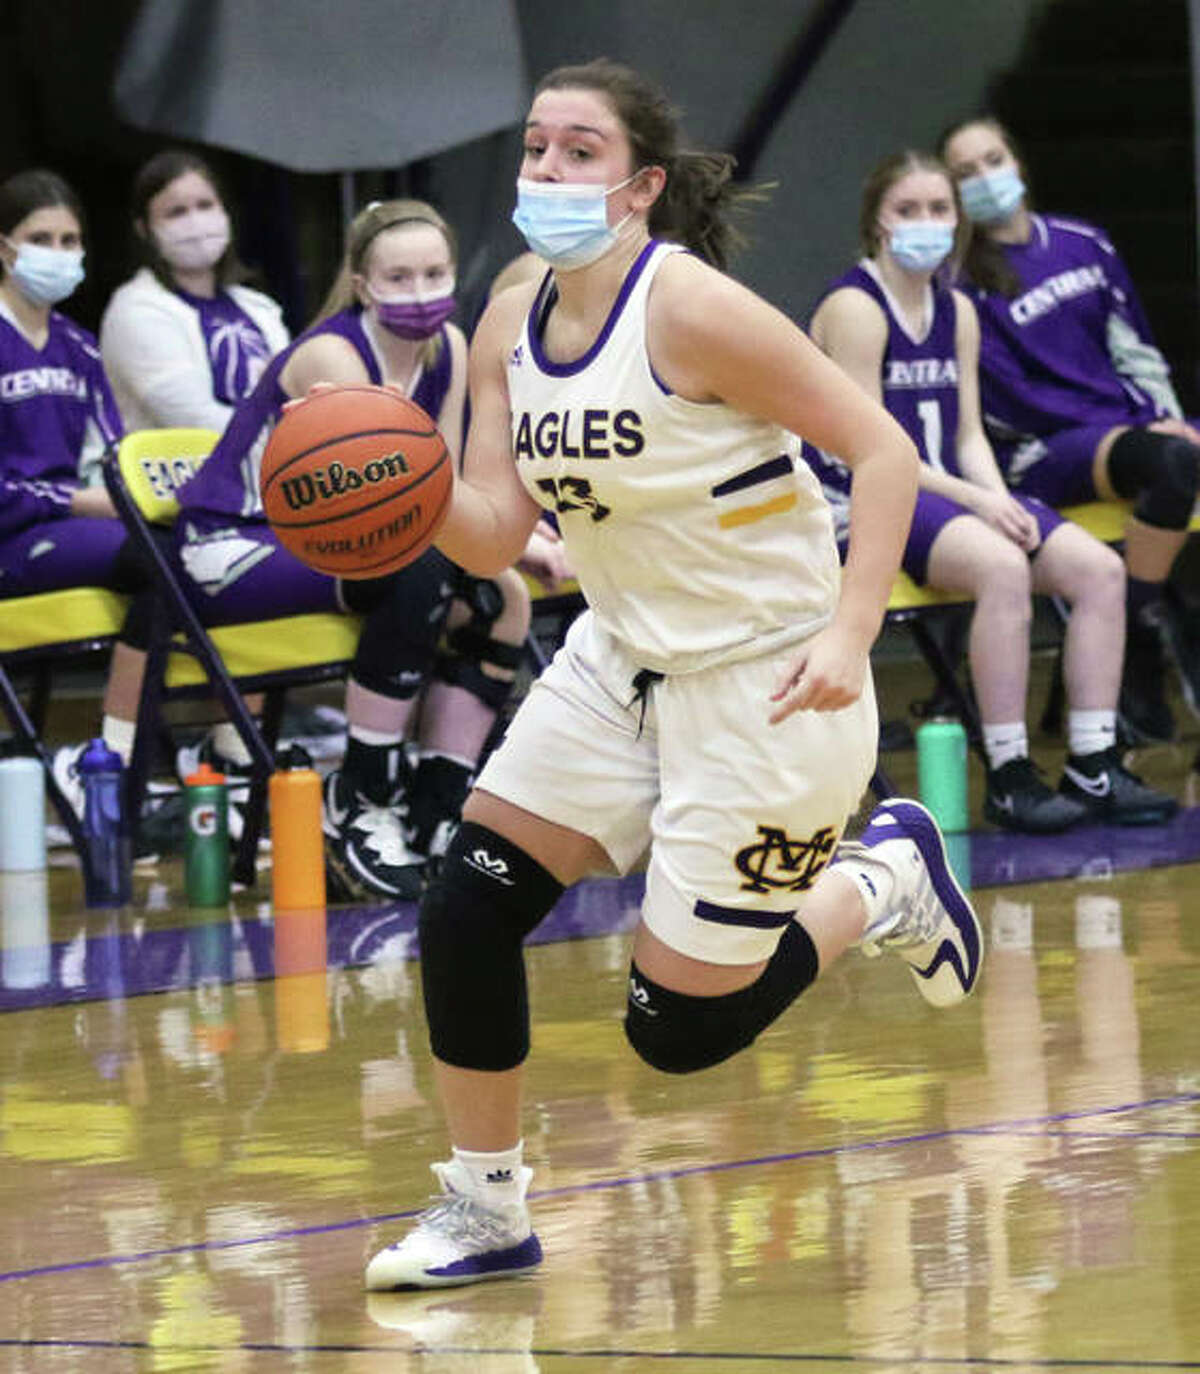 CM's Harper Buhs, playing in her first game since surgery for a torn ACL ended her junior season in December 2019, pushes the ball upcourt in transition Tuesday night in Bethalto.